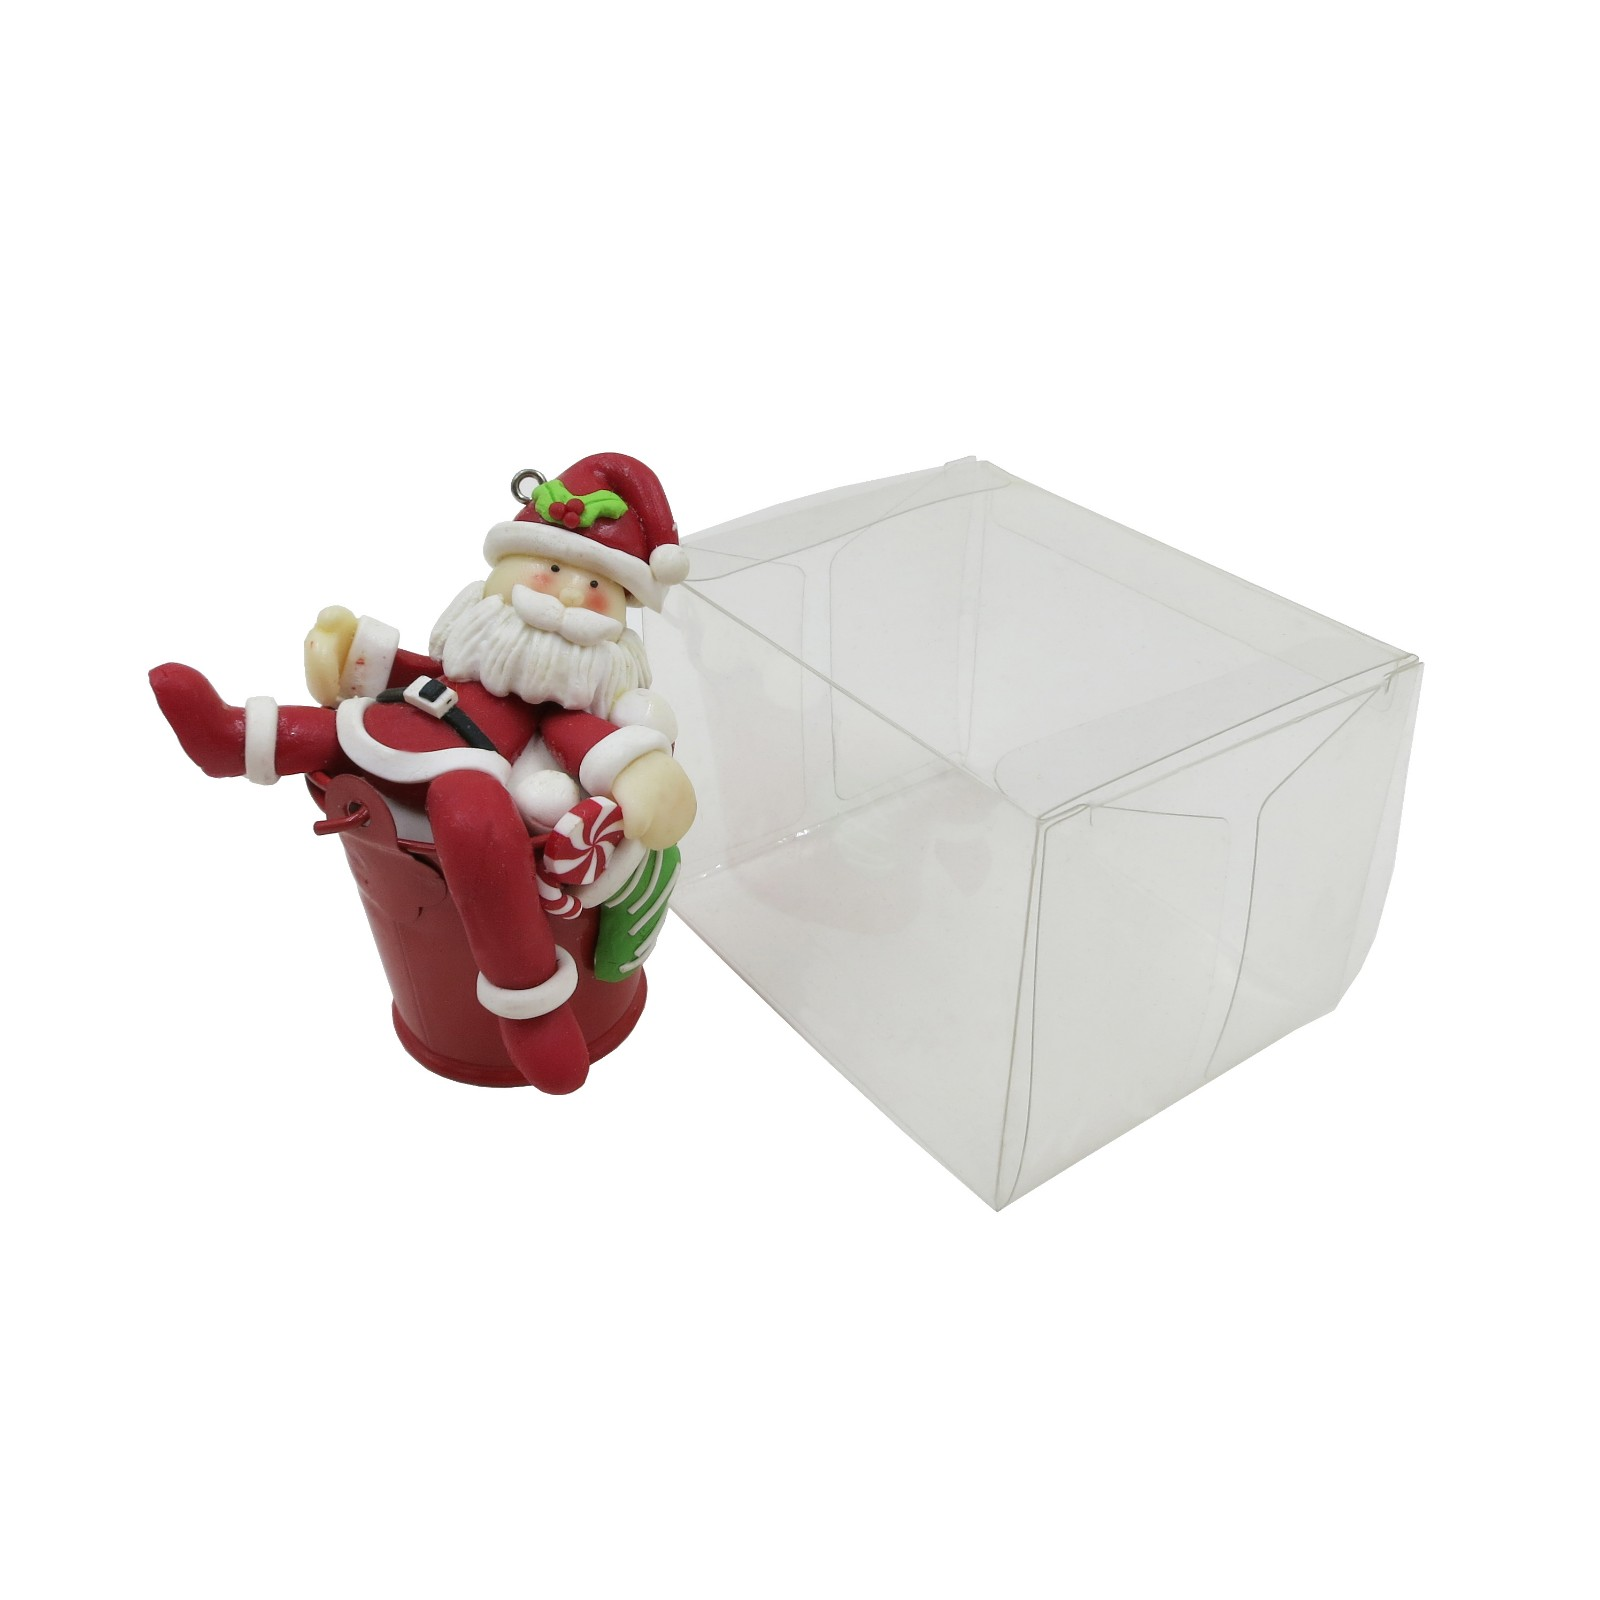 Yijianxing Plastic Products superior plastic box packaging long-term-use for gifts-6